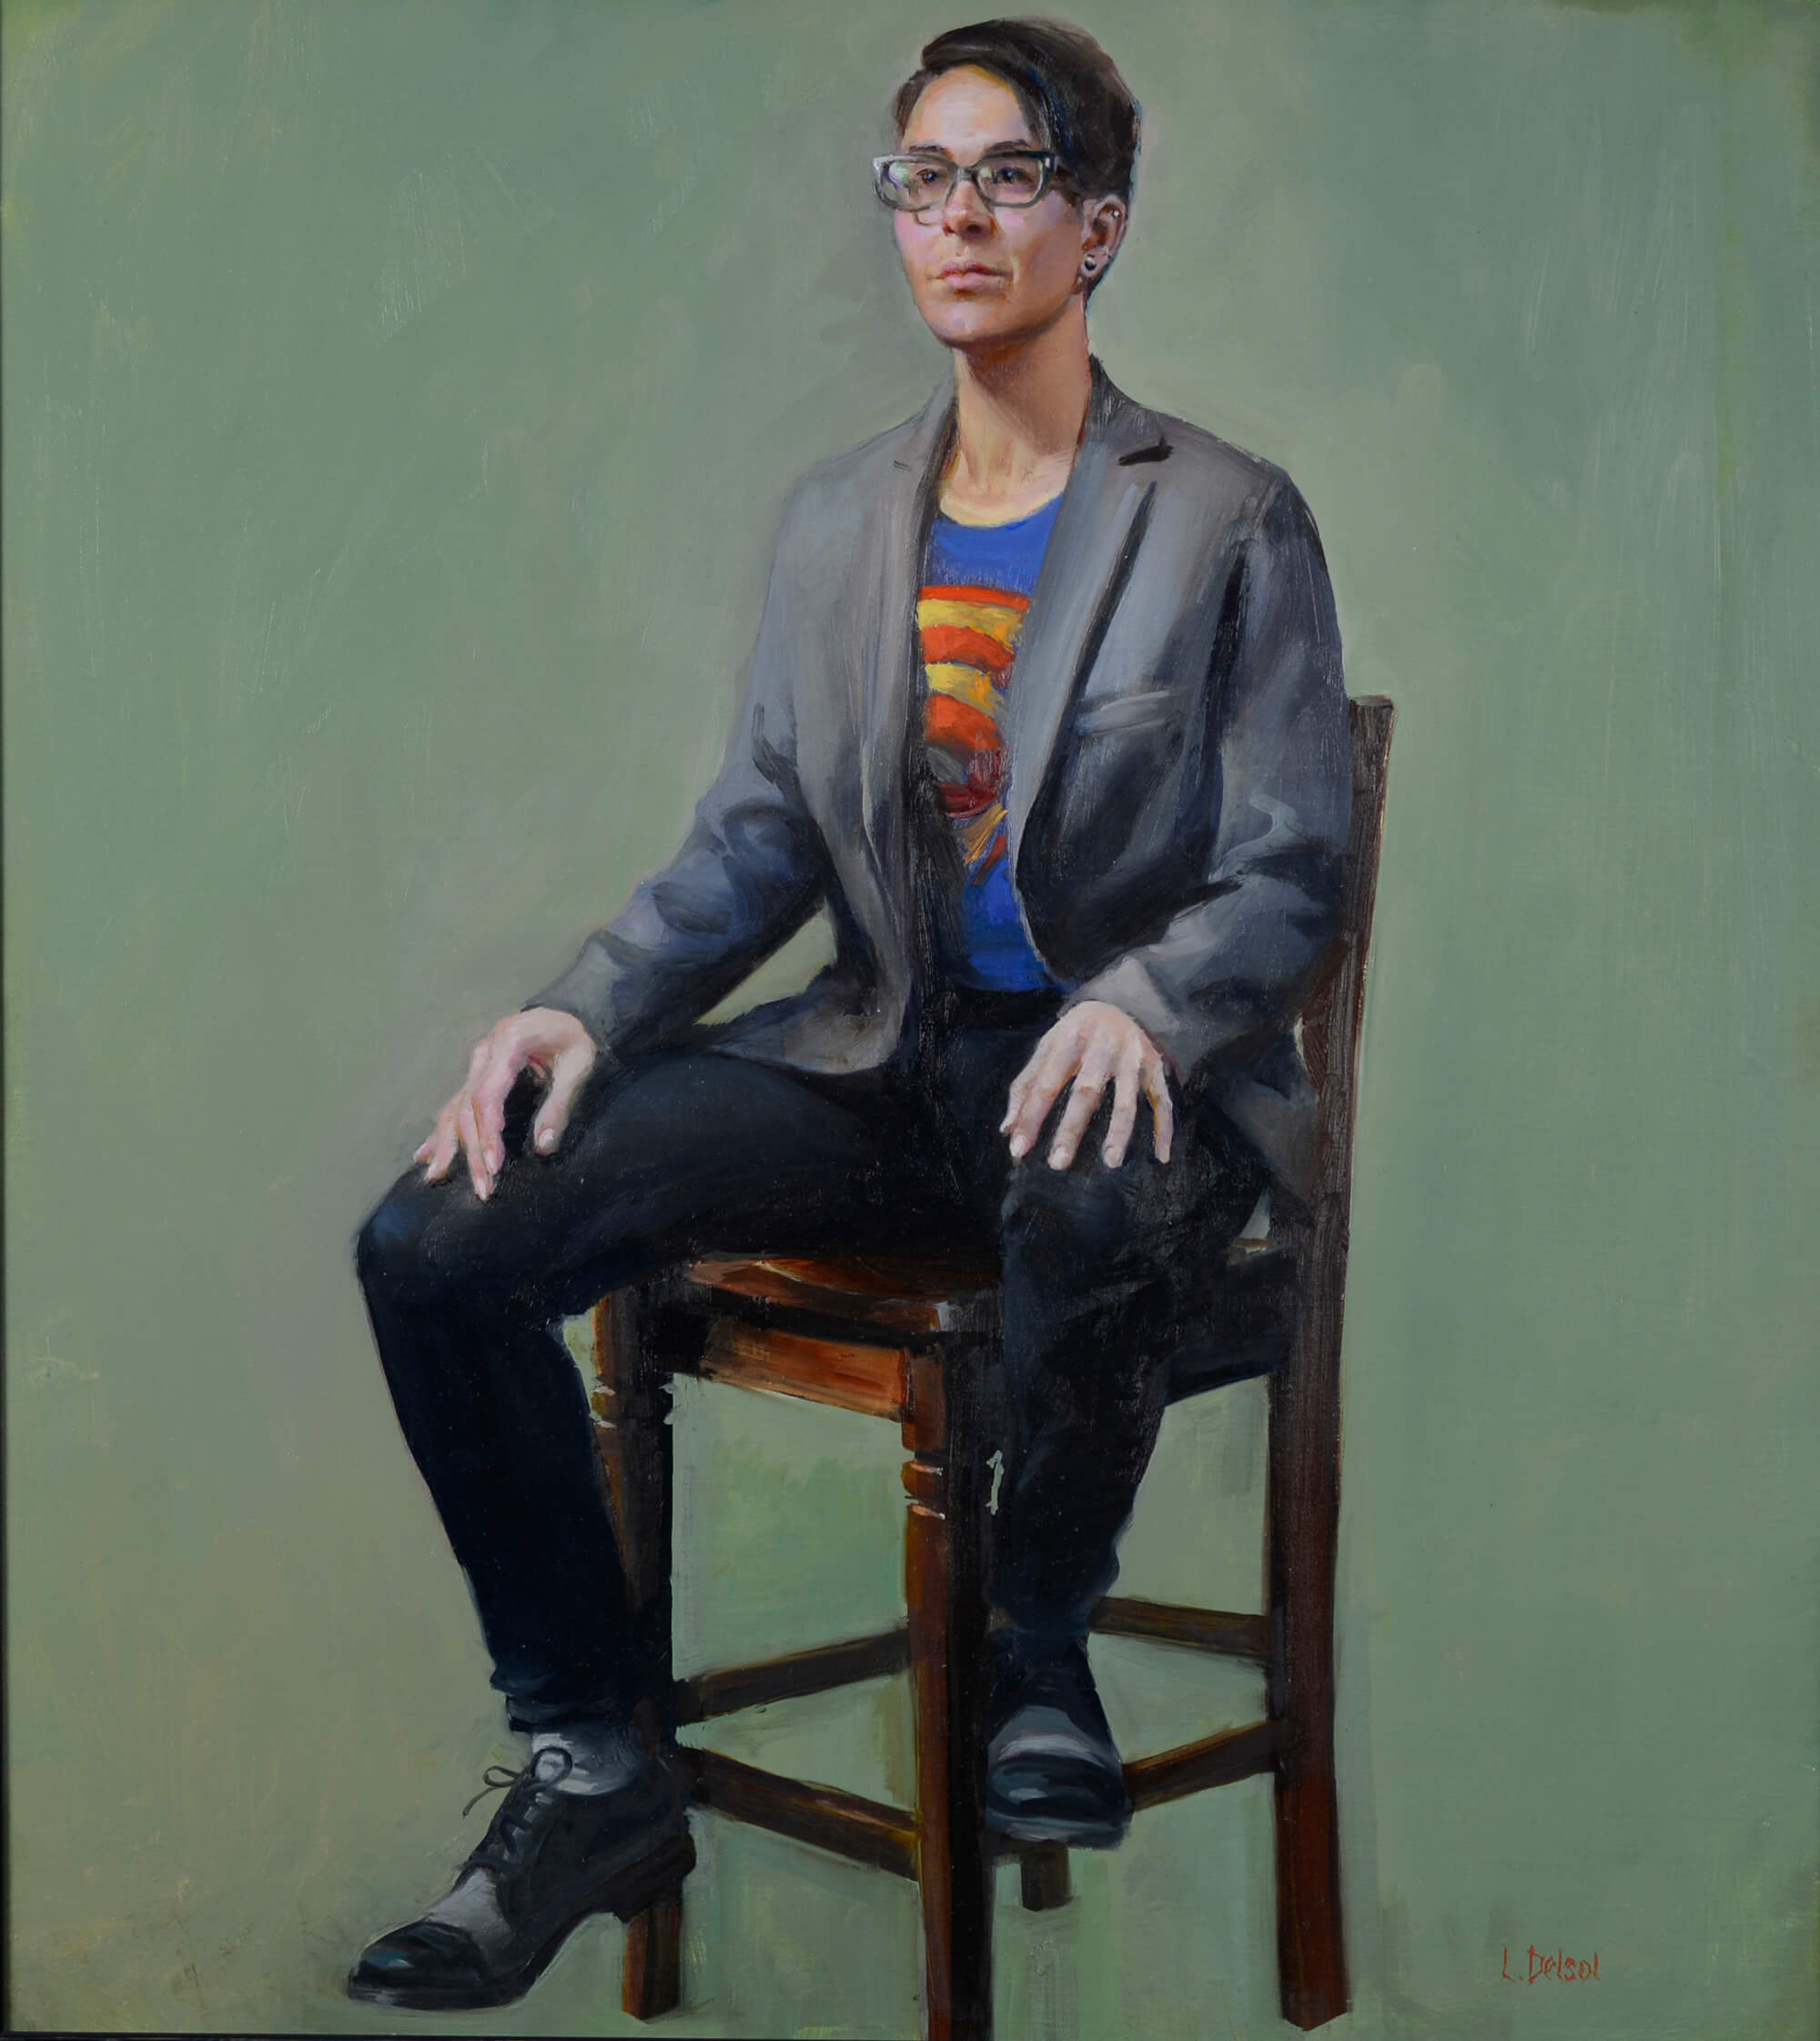 Realistic full fgure oil portrait of bespectacled young woman in gray sport coat and superhero t-shirt on a wooden chair gazing at us